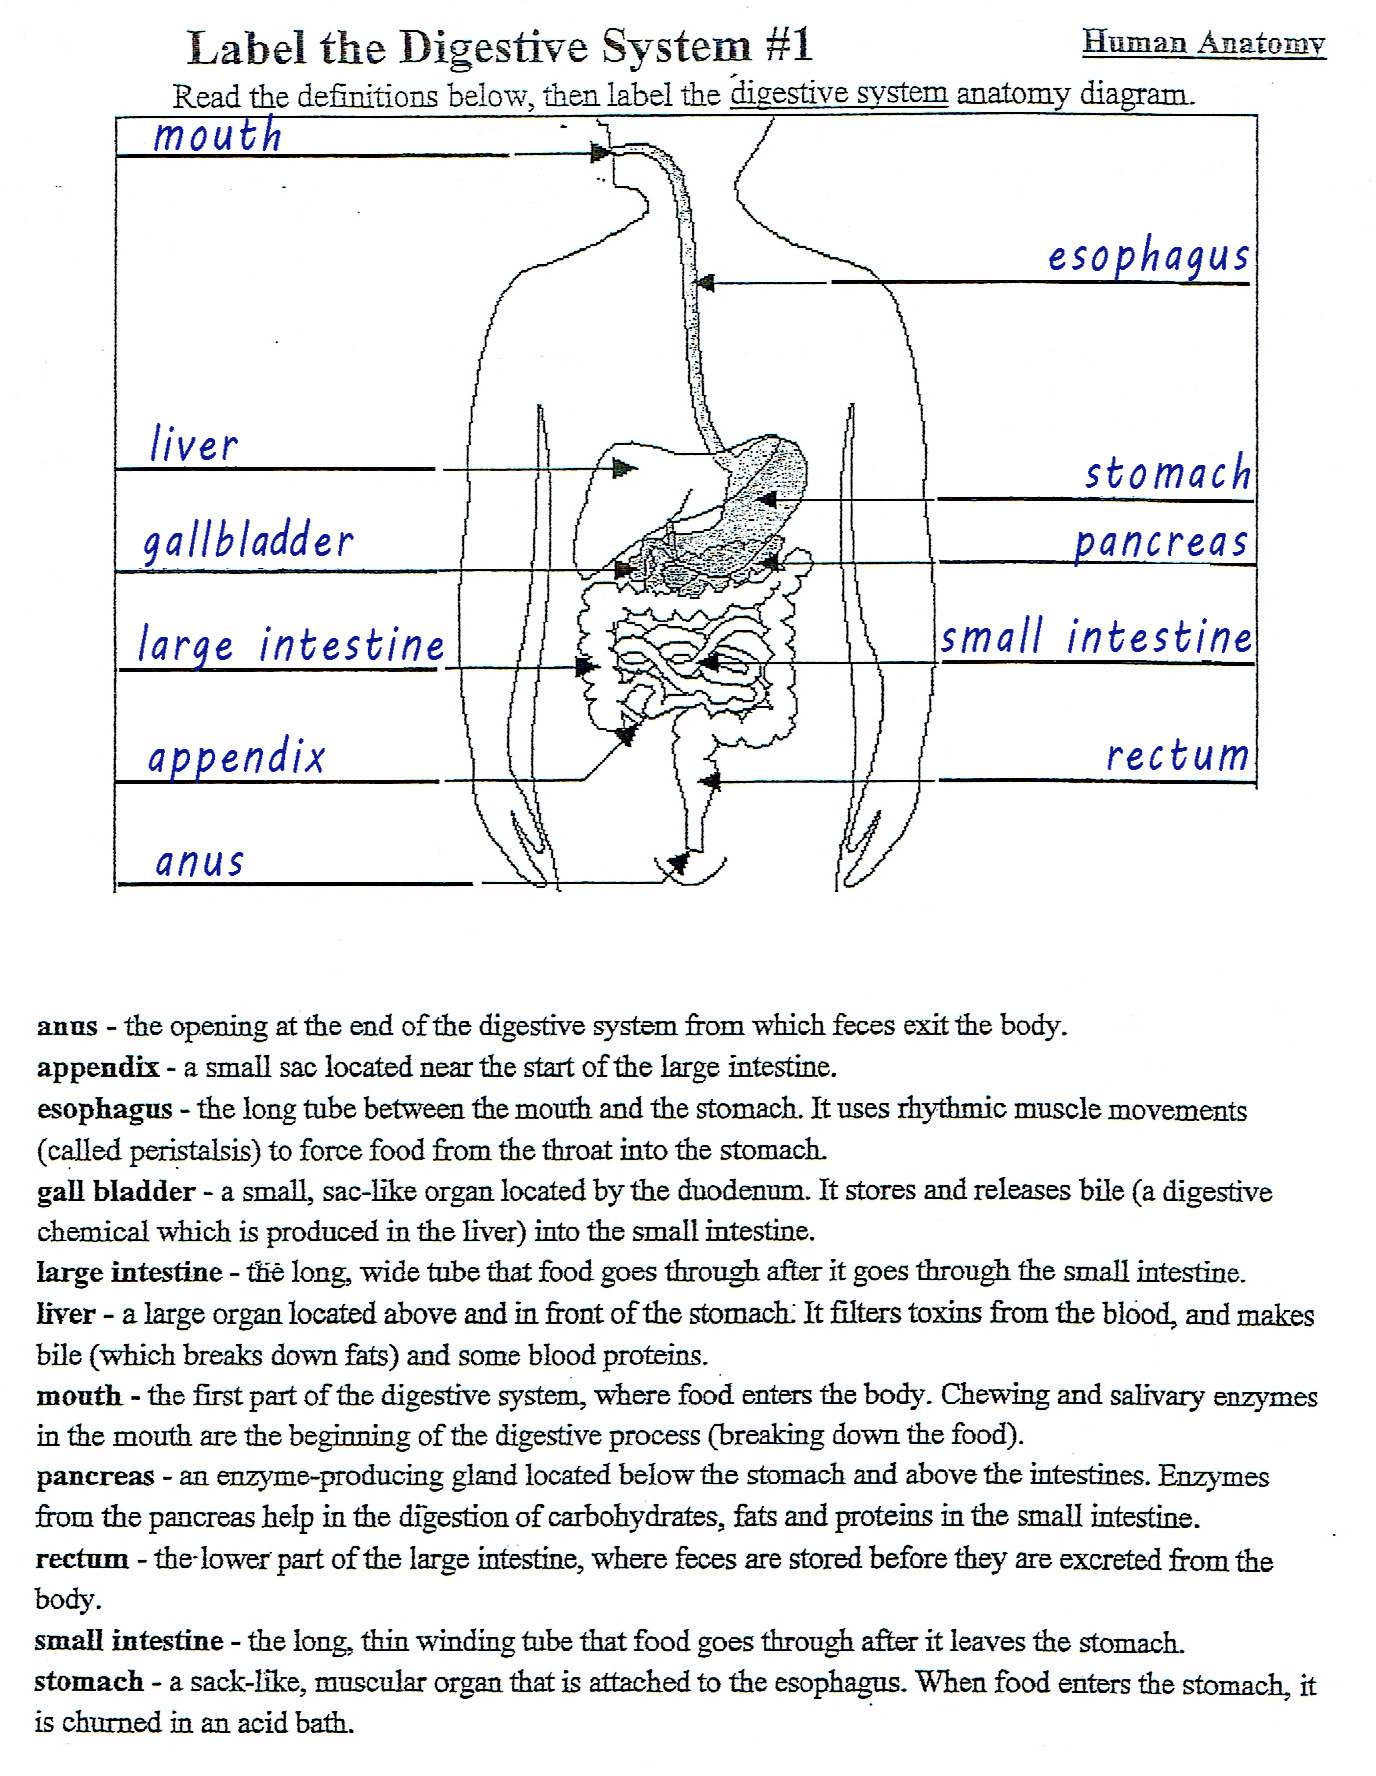 Digestive System Worksheets Middle School 34 Label the Digestive System Worksheet Answers Labels